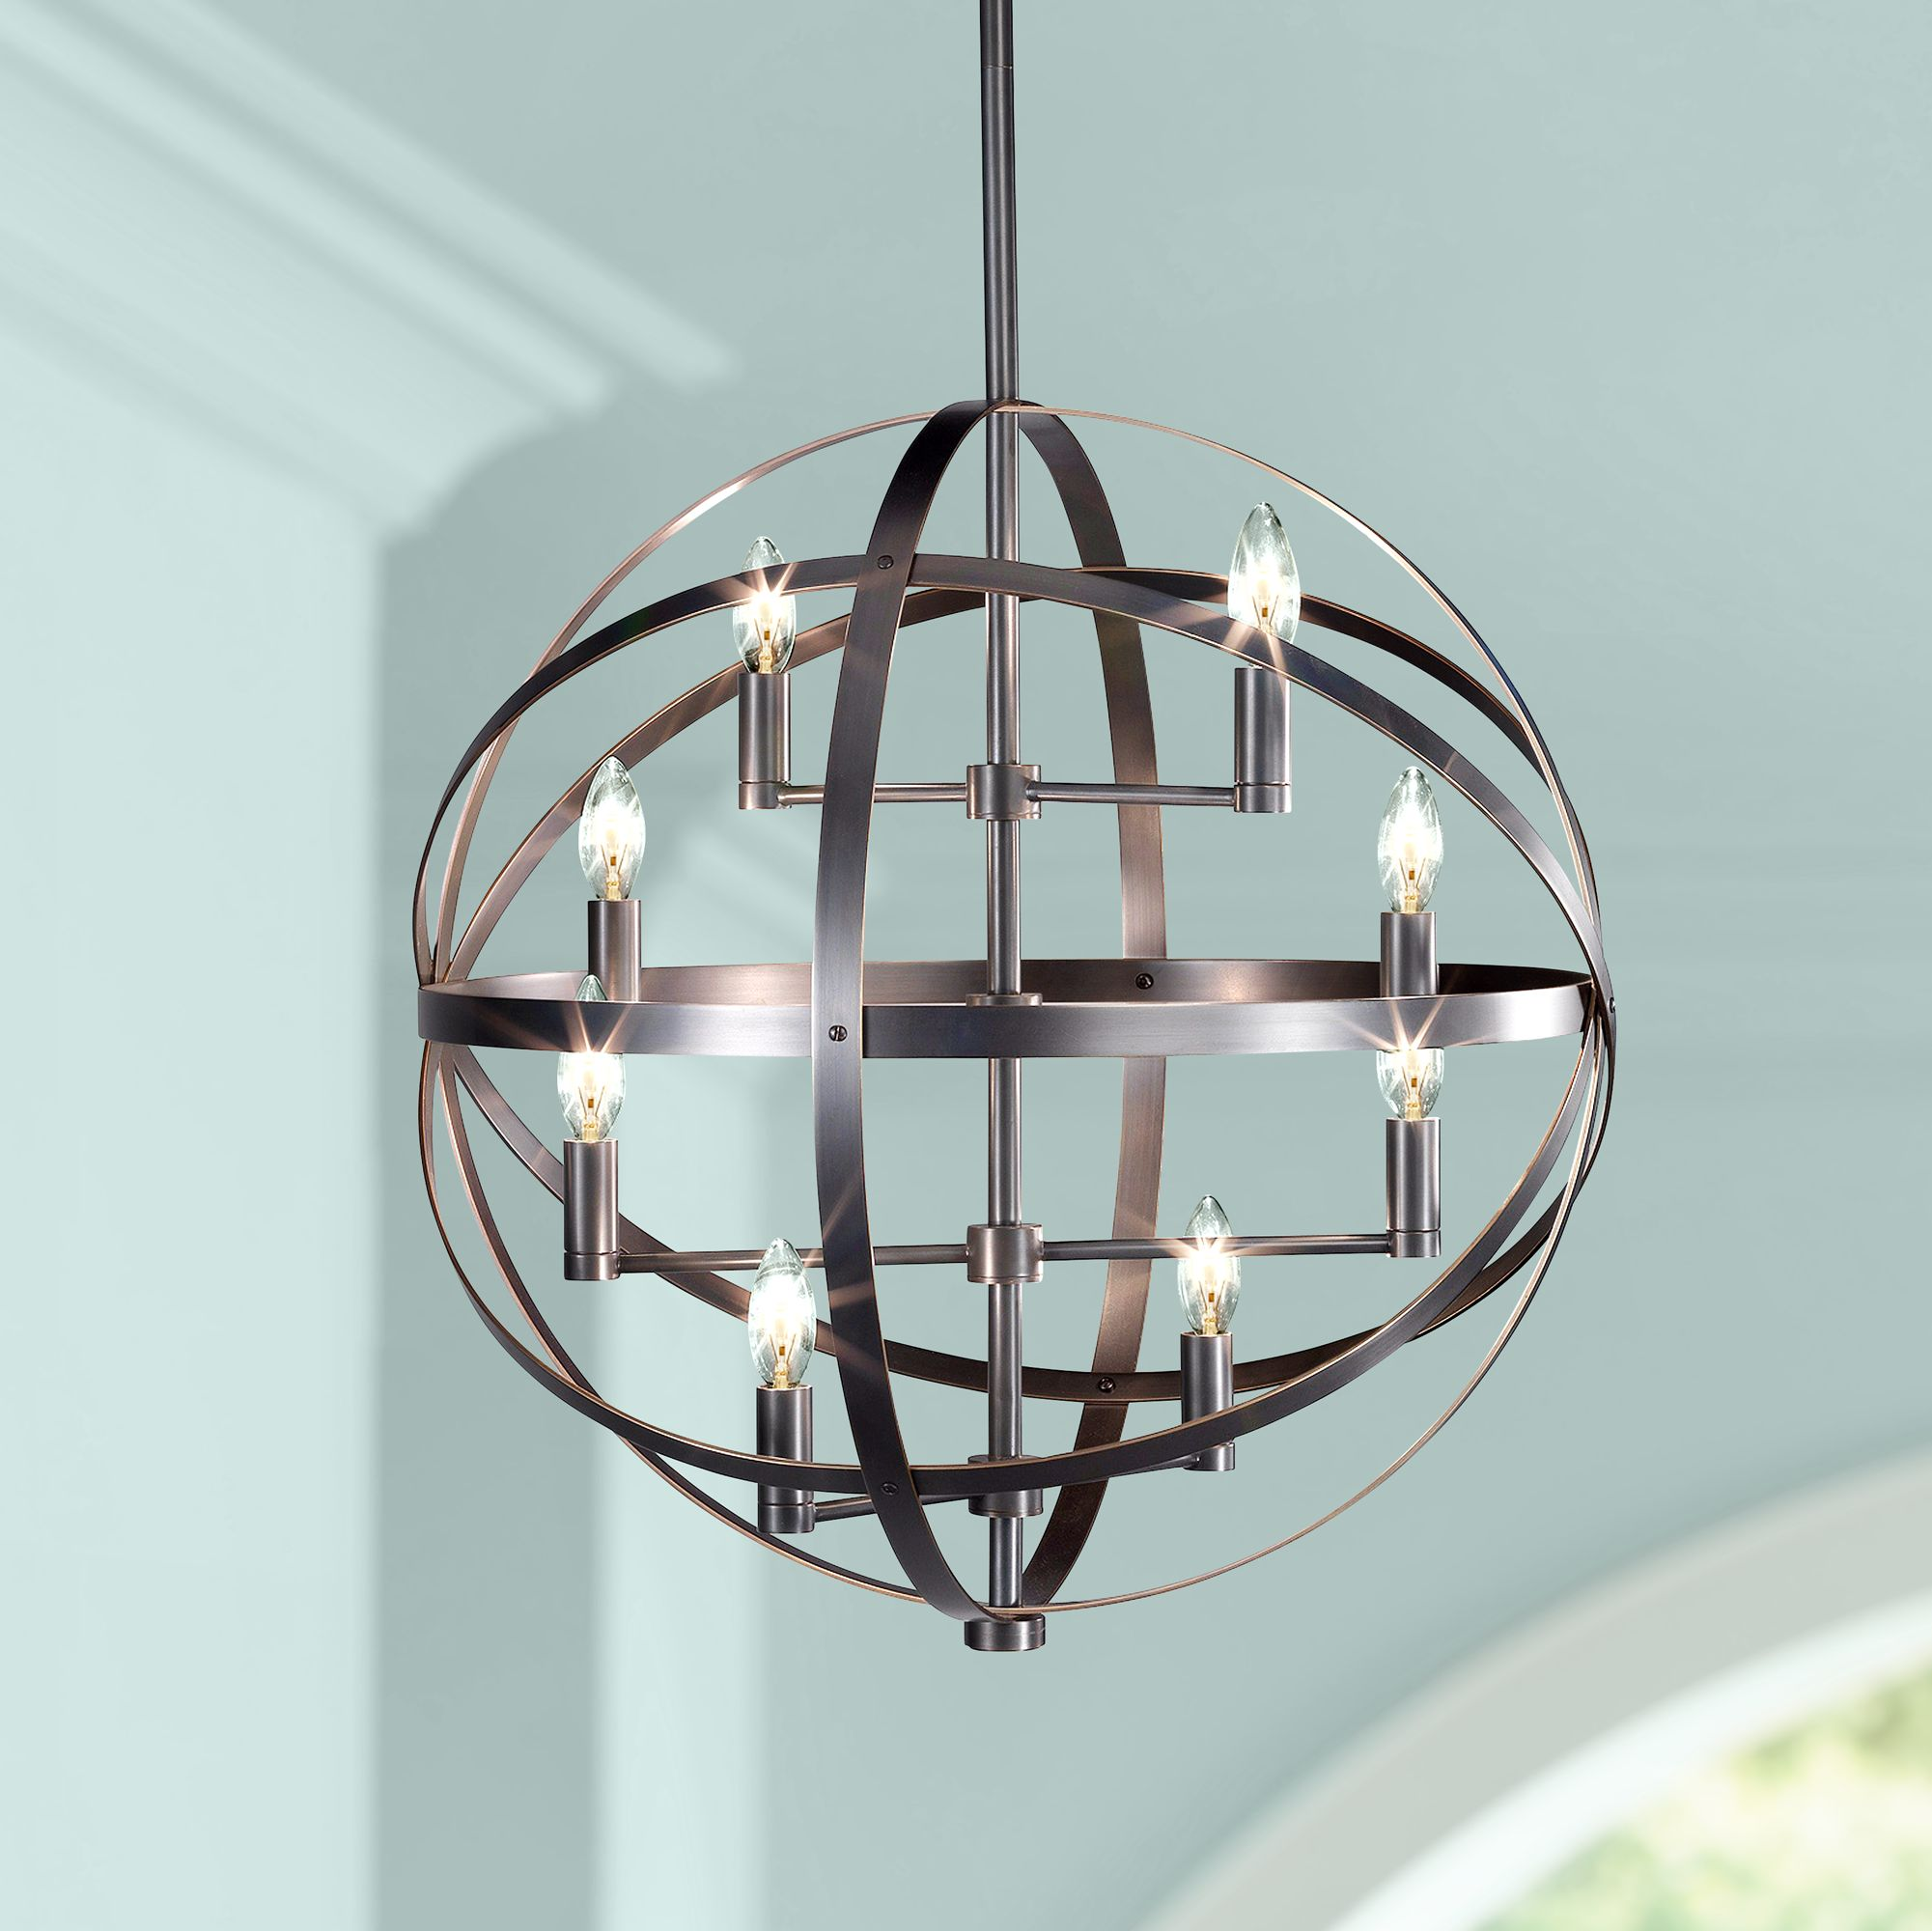 Robert Abbey Lucy 22 & Brushed Steel Robert Abbey Pendant Lighting | Lamps Plus